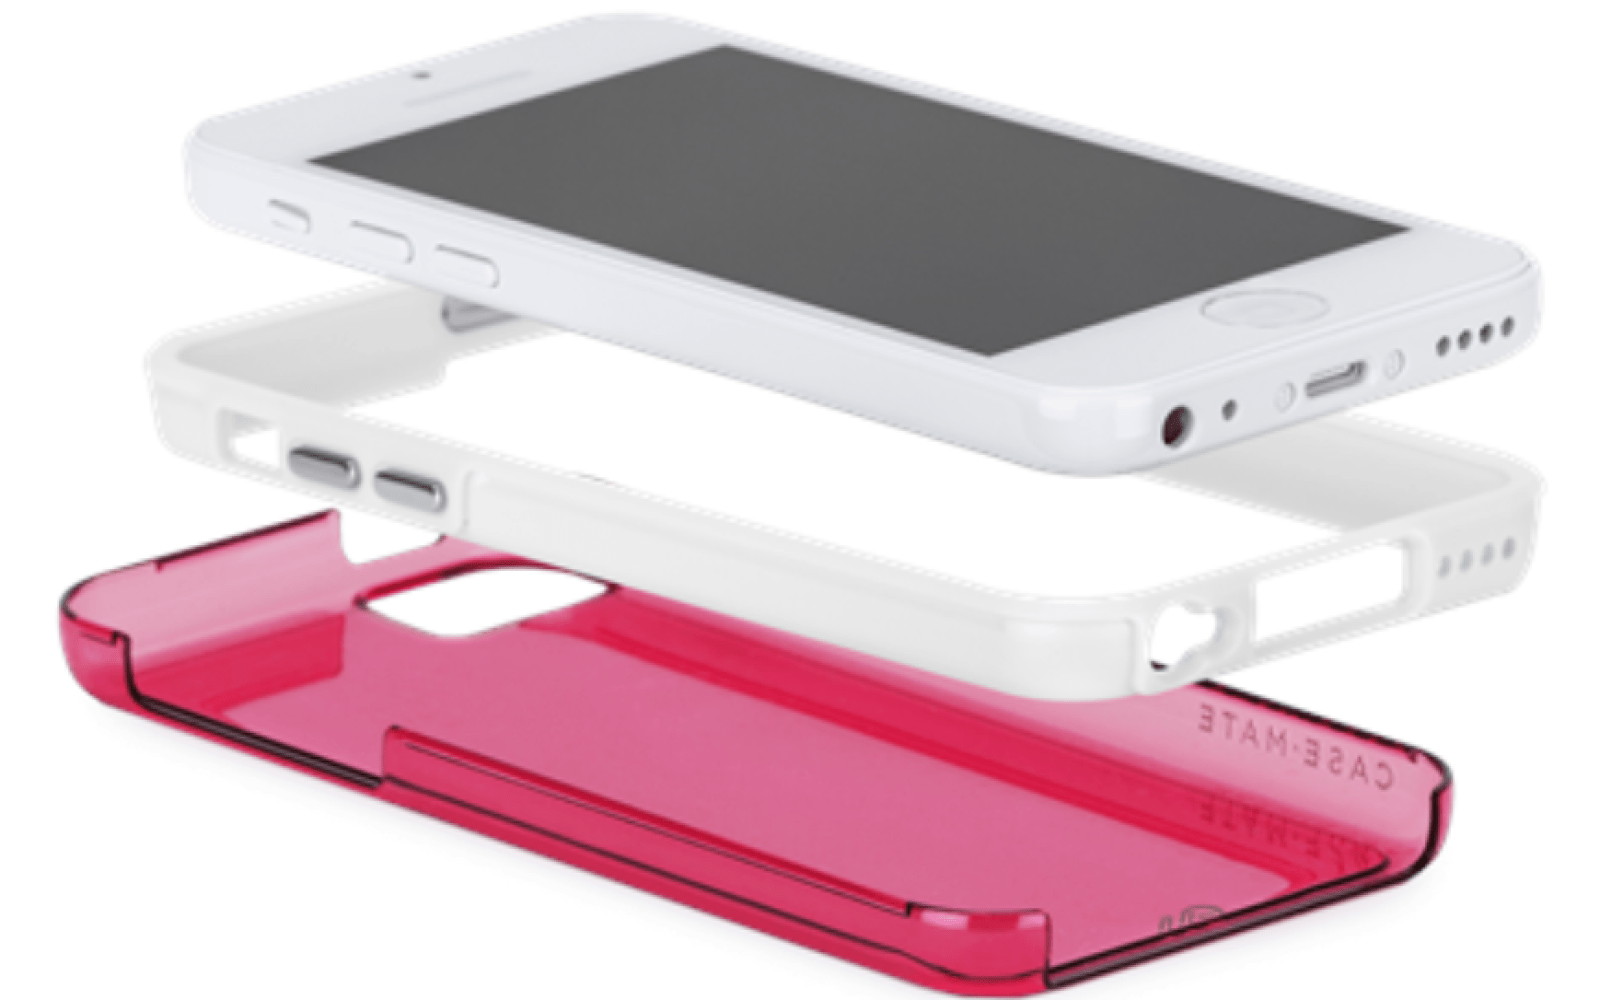 Case-Mate's iPhone 5C designs 'evleak' out, including September 20th ship date